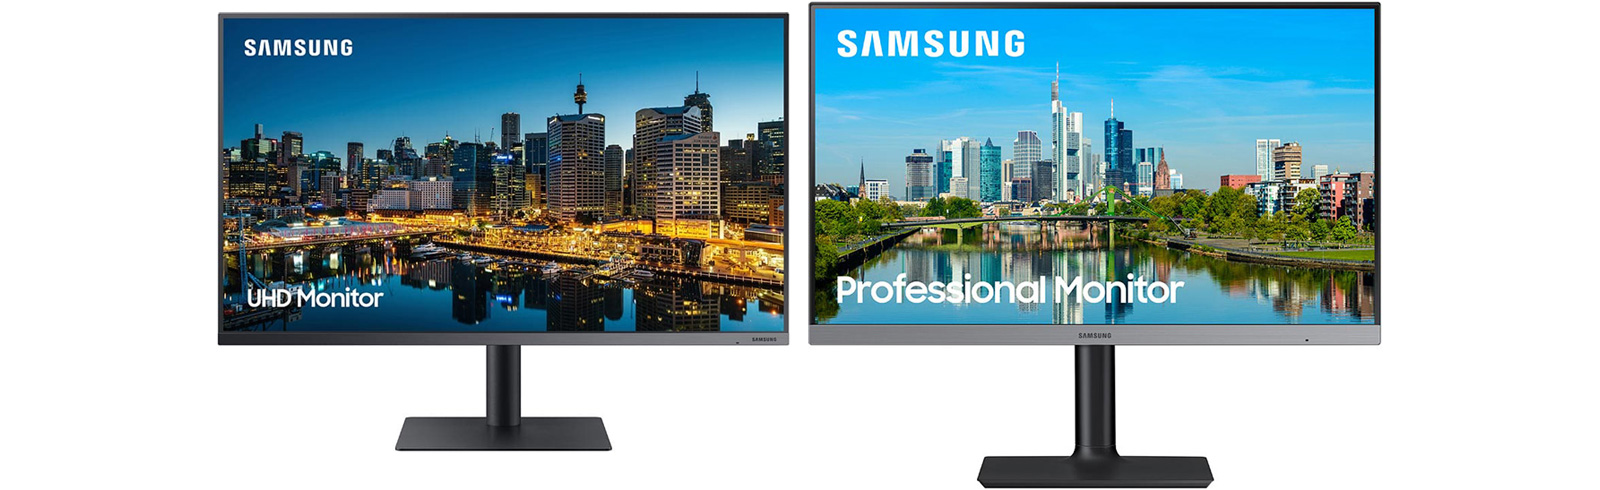 Samsung F32TU87 with 4K resolution and Thunderbolt 3 goes official together with Samsung F24T65